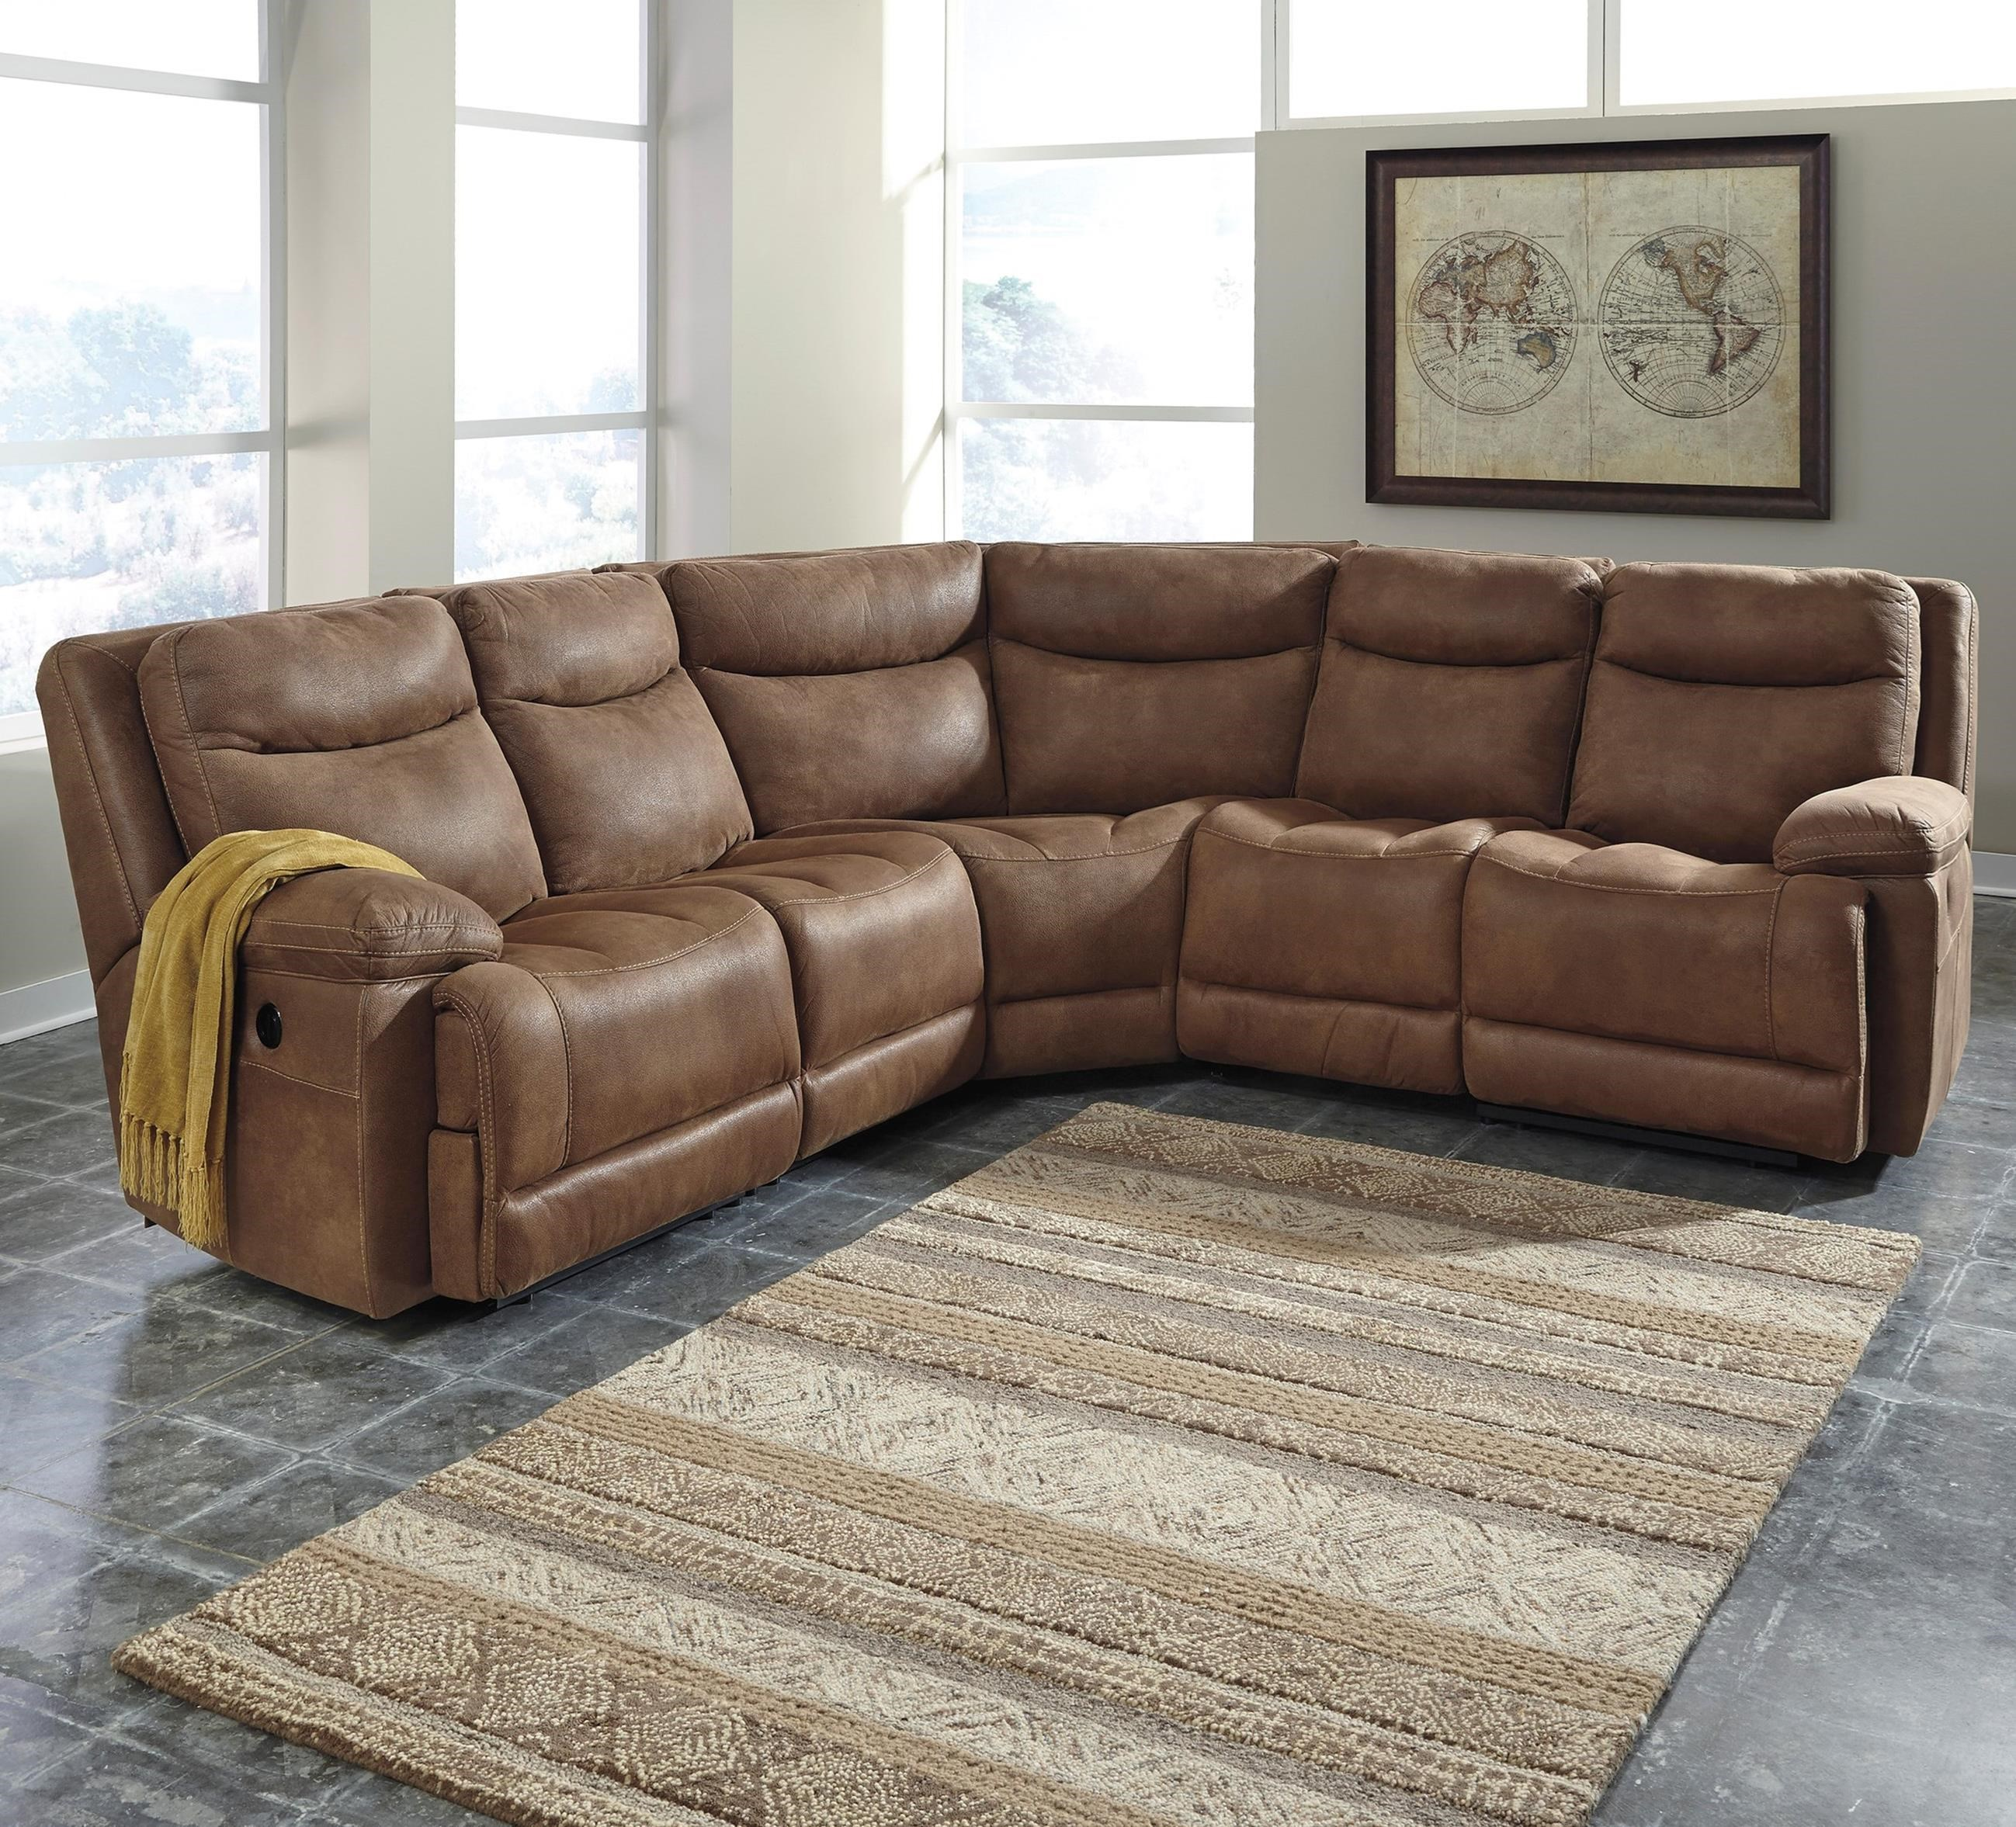 5-Piece Power Reclining Sectional : power sectional - Sectionals, Sofas & Couches